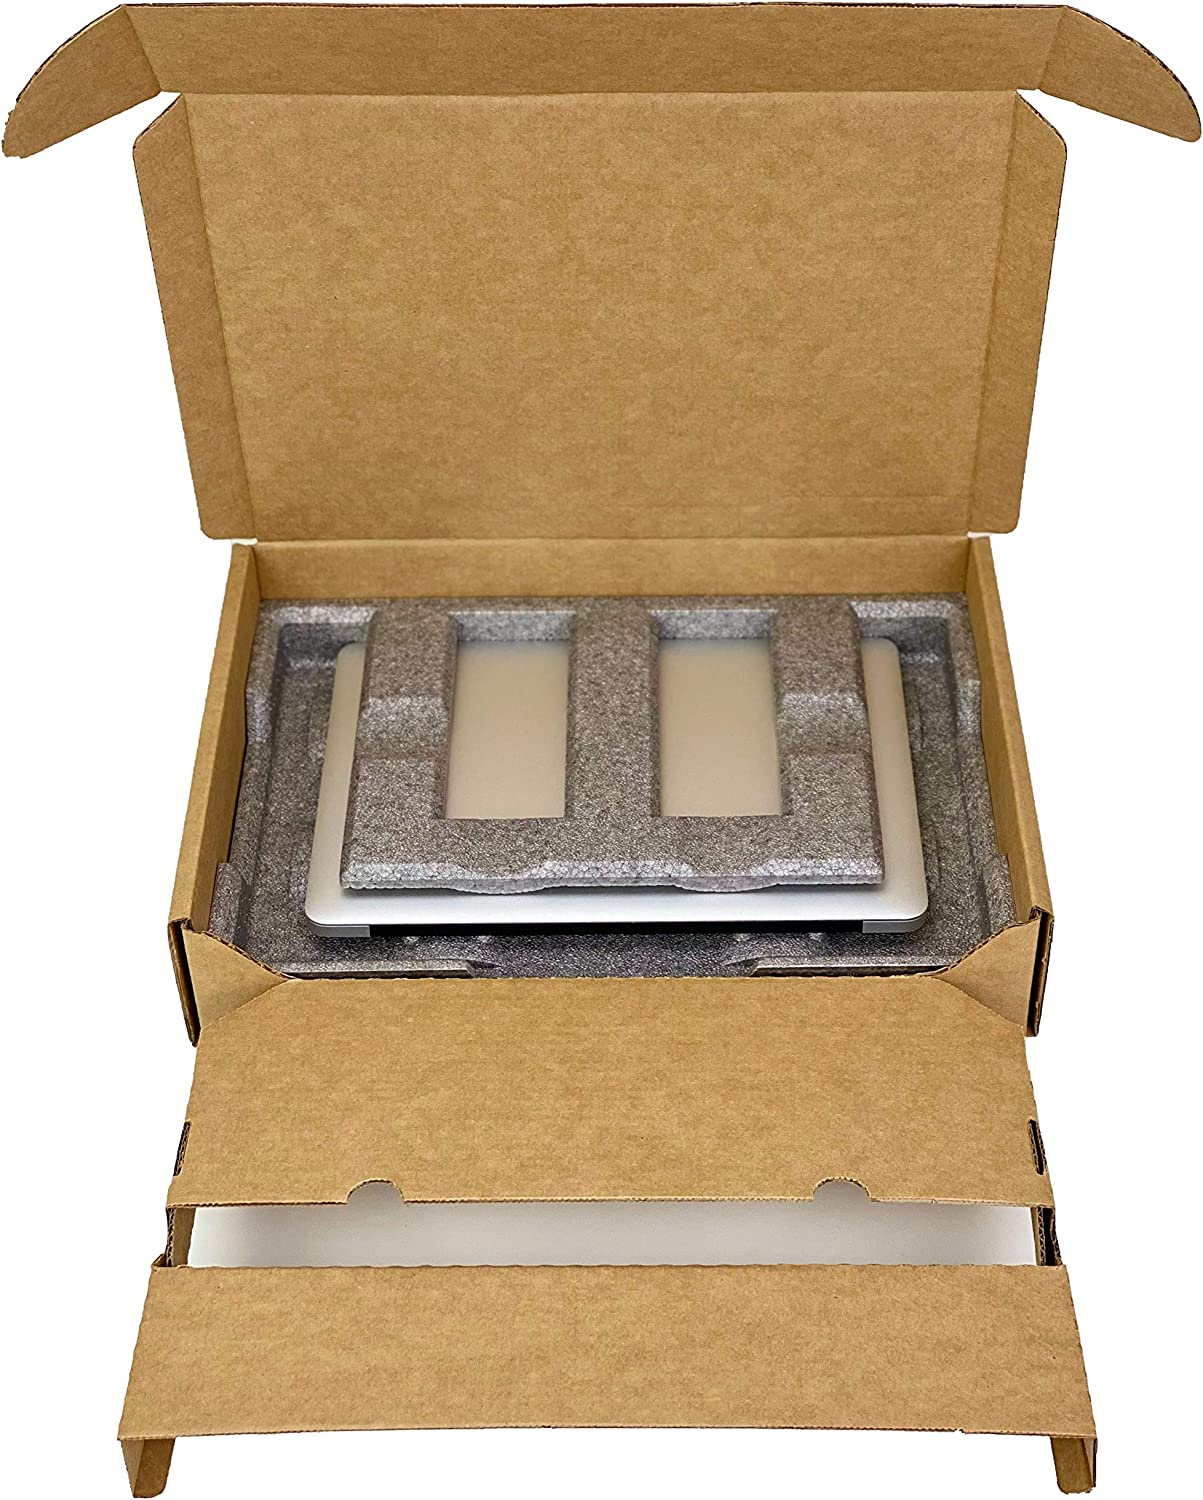 Universal Laptop Shipping Box, FedEx/UPS/ISTA Certified, Fits Most Laptop Screen Sizes, theBOXlargeV2